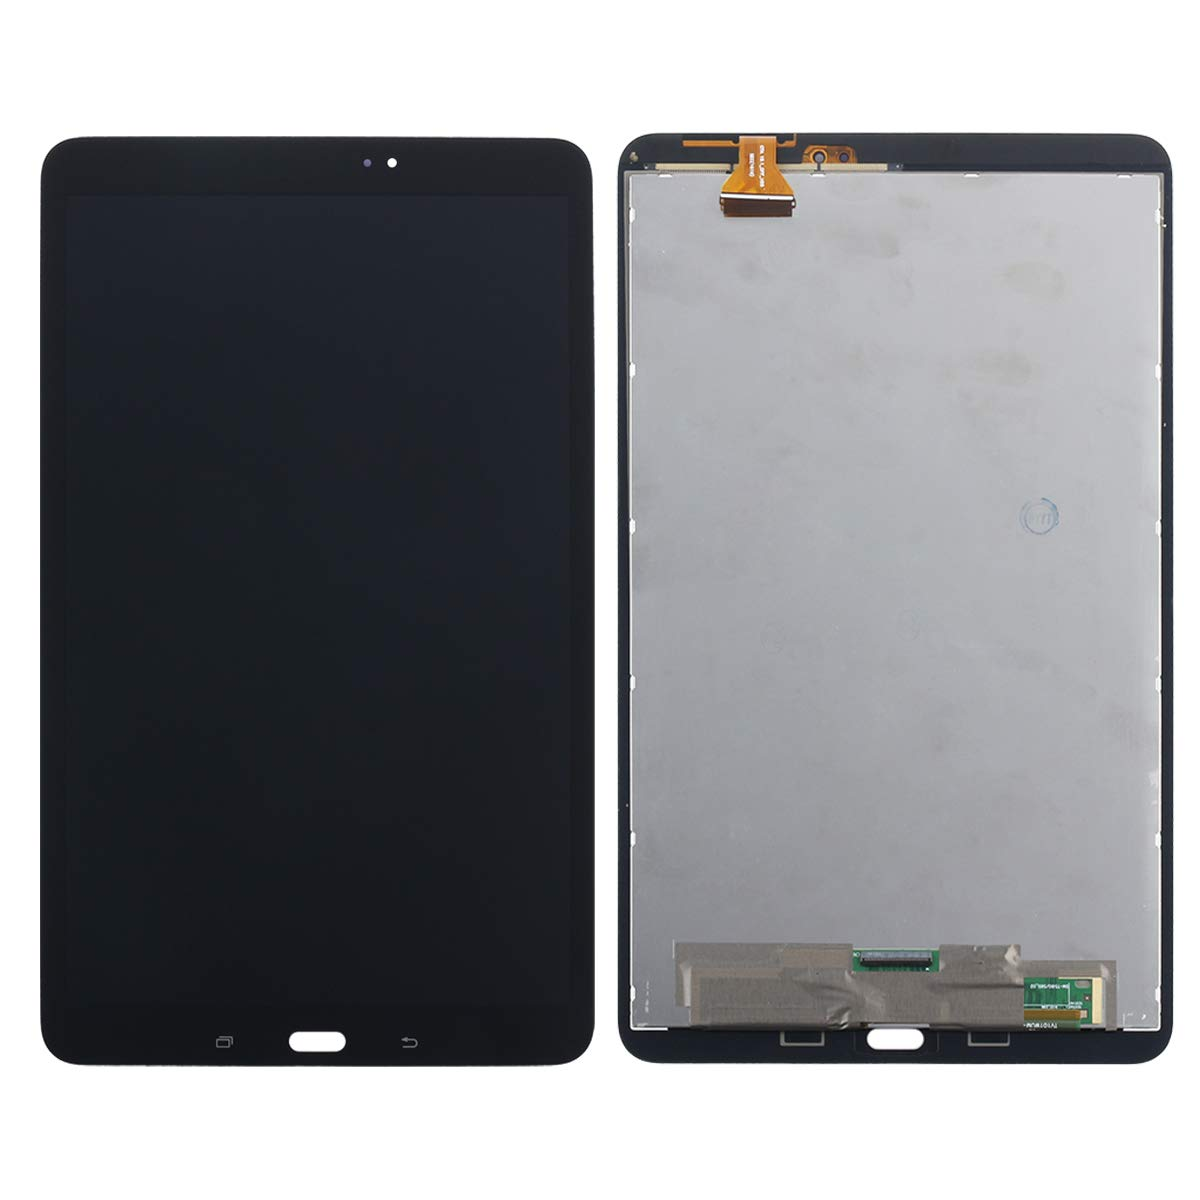 Black A Set of Tools YHX-US Assembly for Samsung Galaxy TAB A 2016 SM-T580 T585 10.1 LCD Display Touch Screen Digitizer Glass Replacement